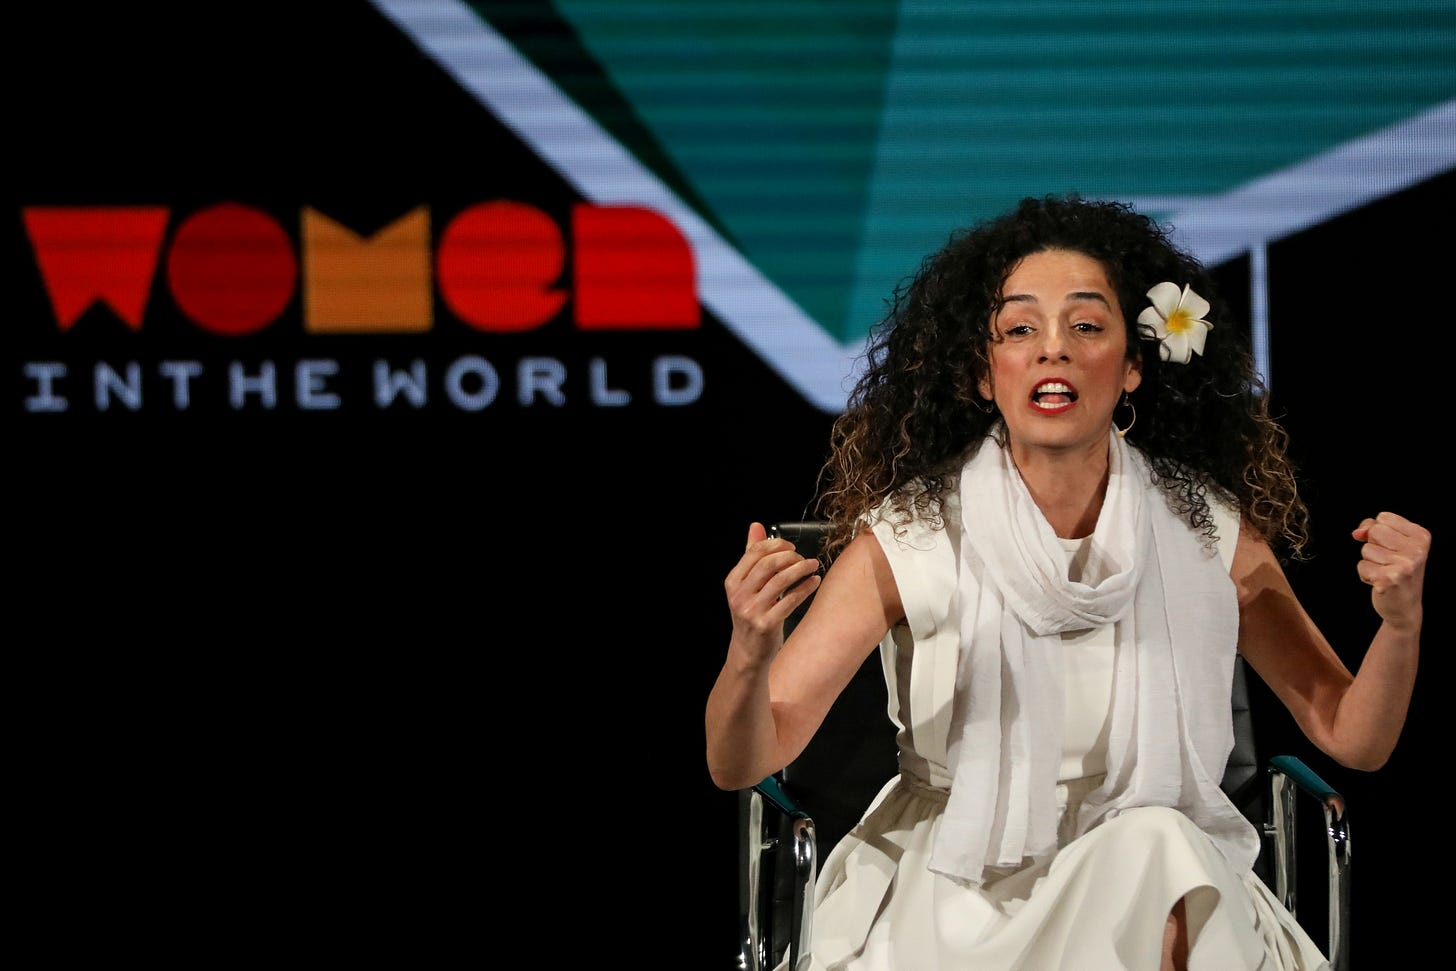 Masih Alinejad, Iranian journalist and women's rights activist, speaks on stage at the Women In The World Summit in New York, U.S, April 12, 2019. REUTERS/Brendan McDermid/File Photo